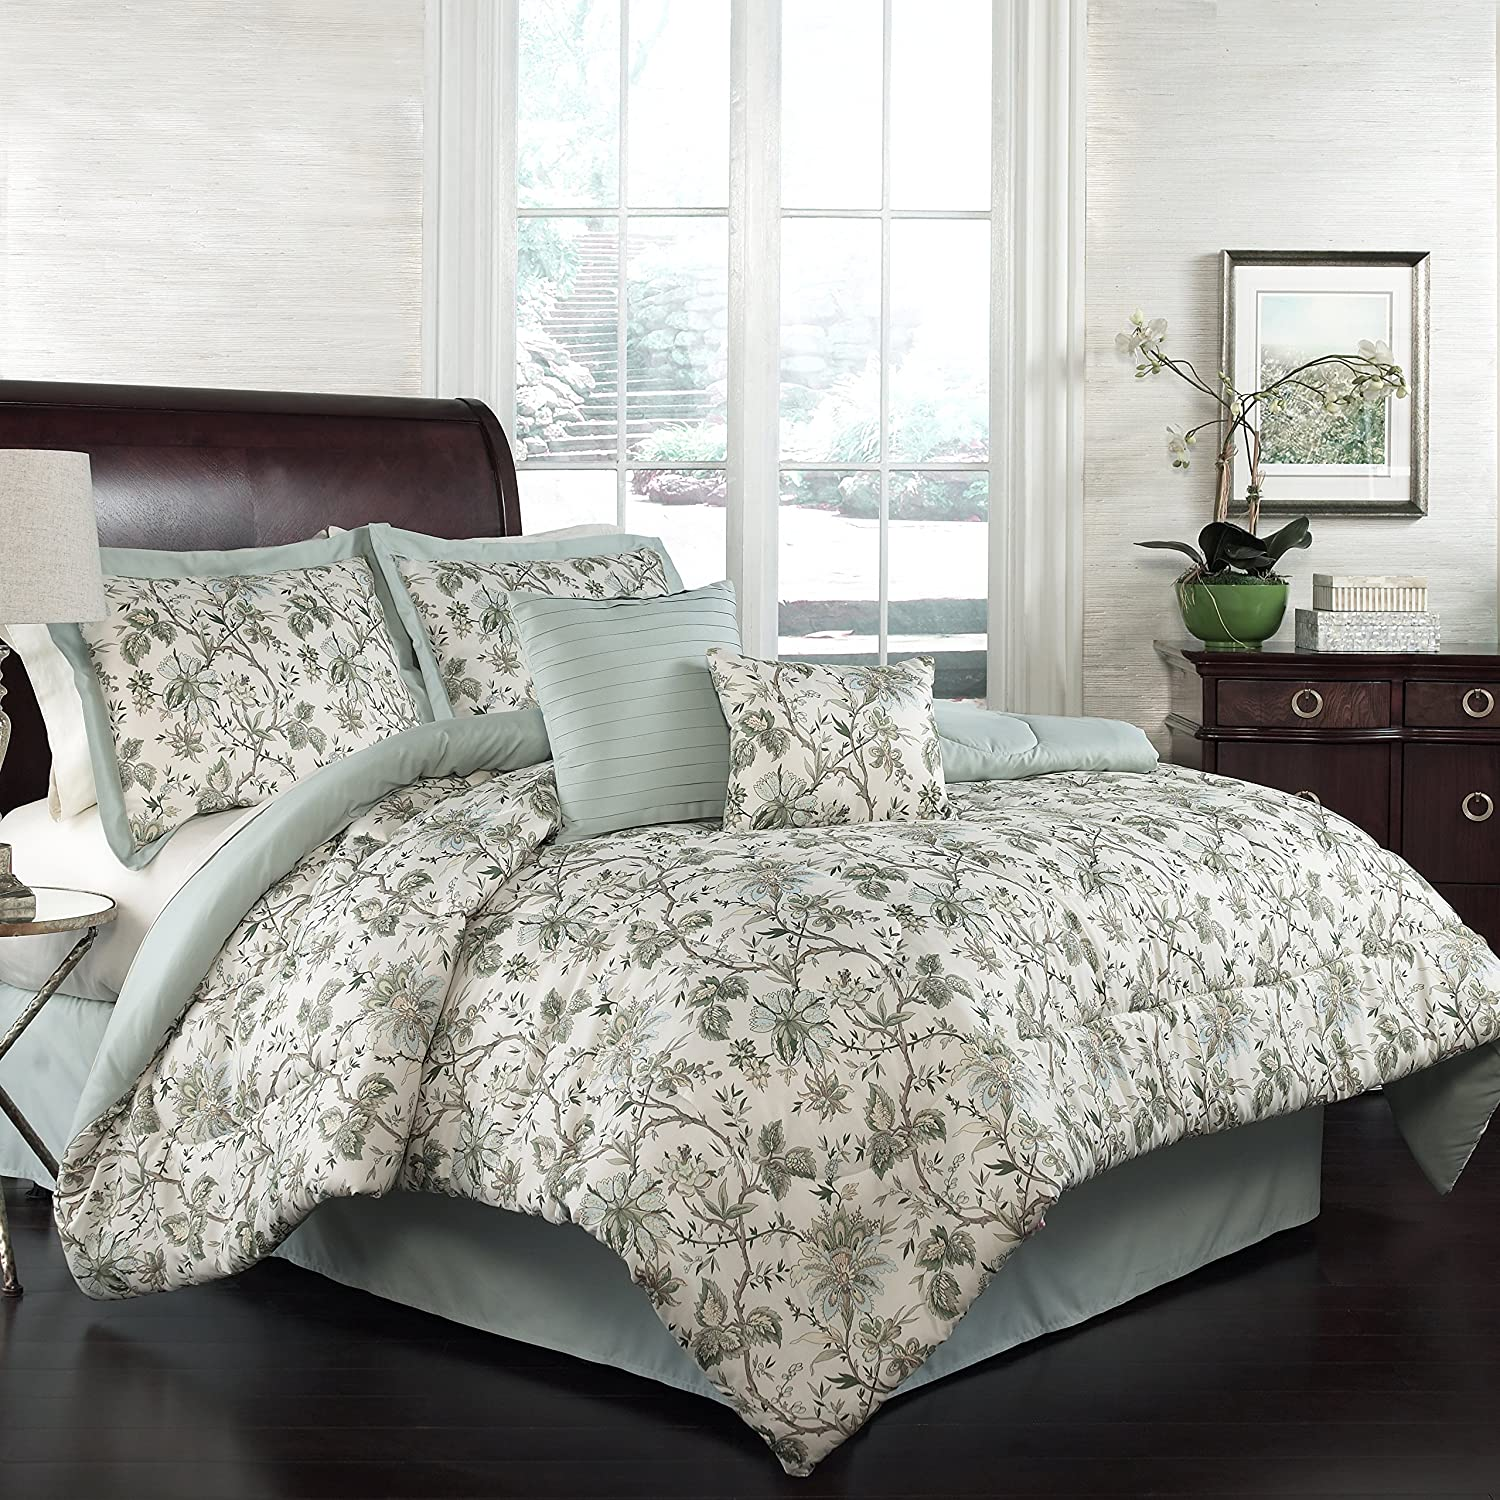 WAVERLY Felicite Set with Coordinating store Bed Pil 40% OFF Cheap Sale Skirt 2 Throw and